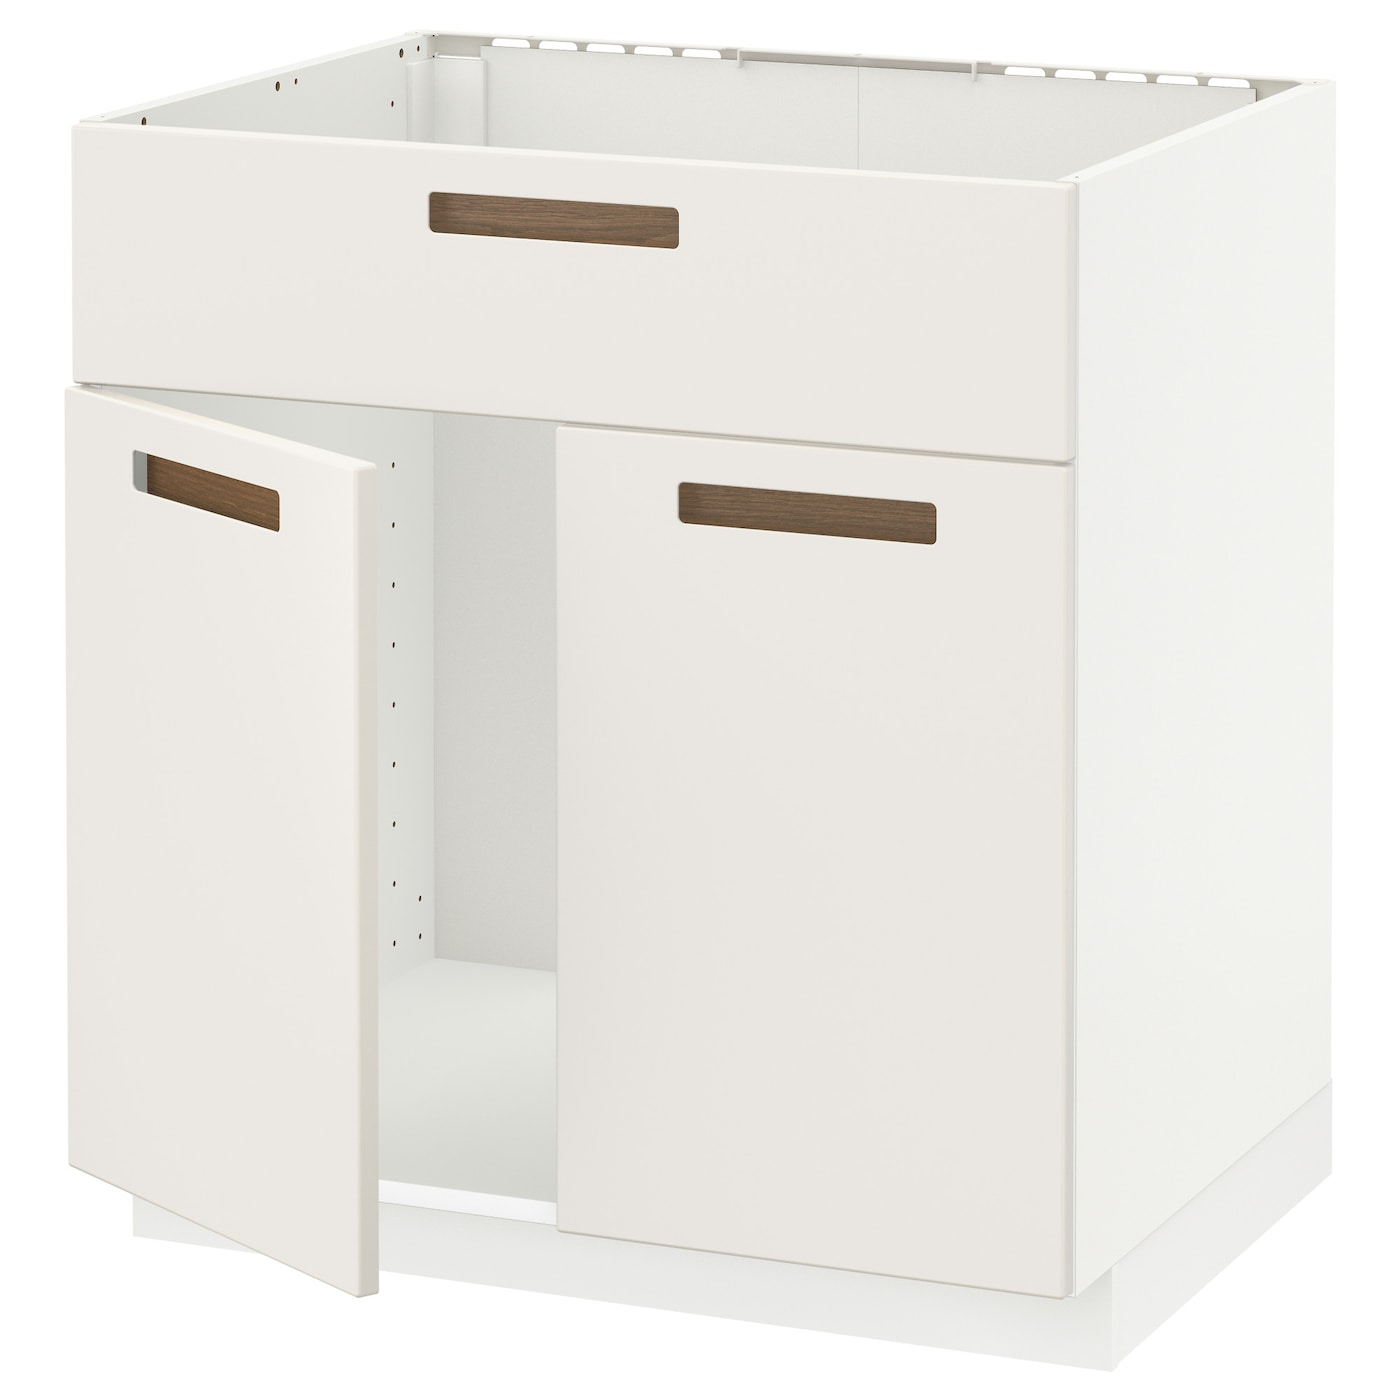 IKEA METOD base cabinet f sink w 2 doors/front Sturdy frame construction 18  sc 1 st  Ikea : kitchen sink units - hauntedcathouse.org